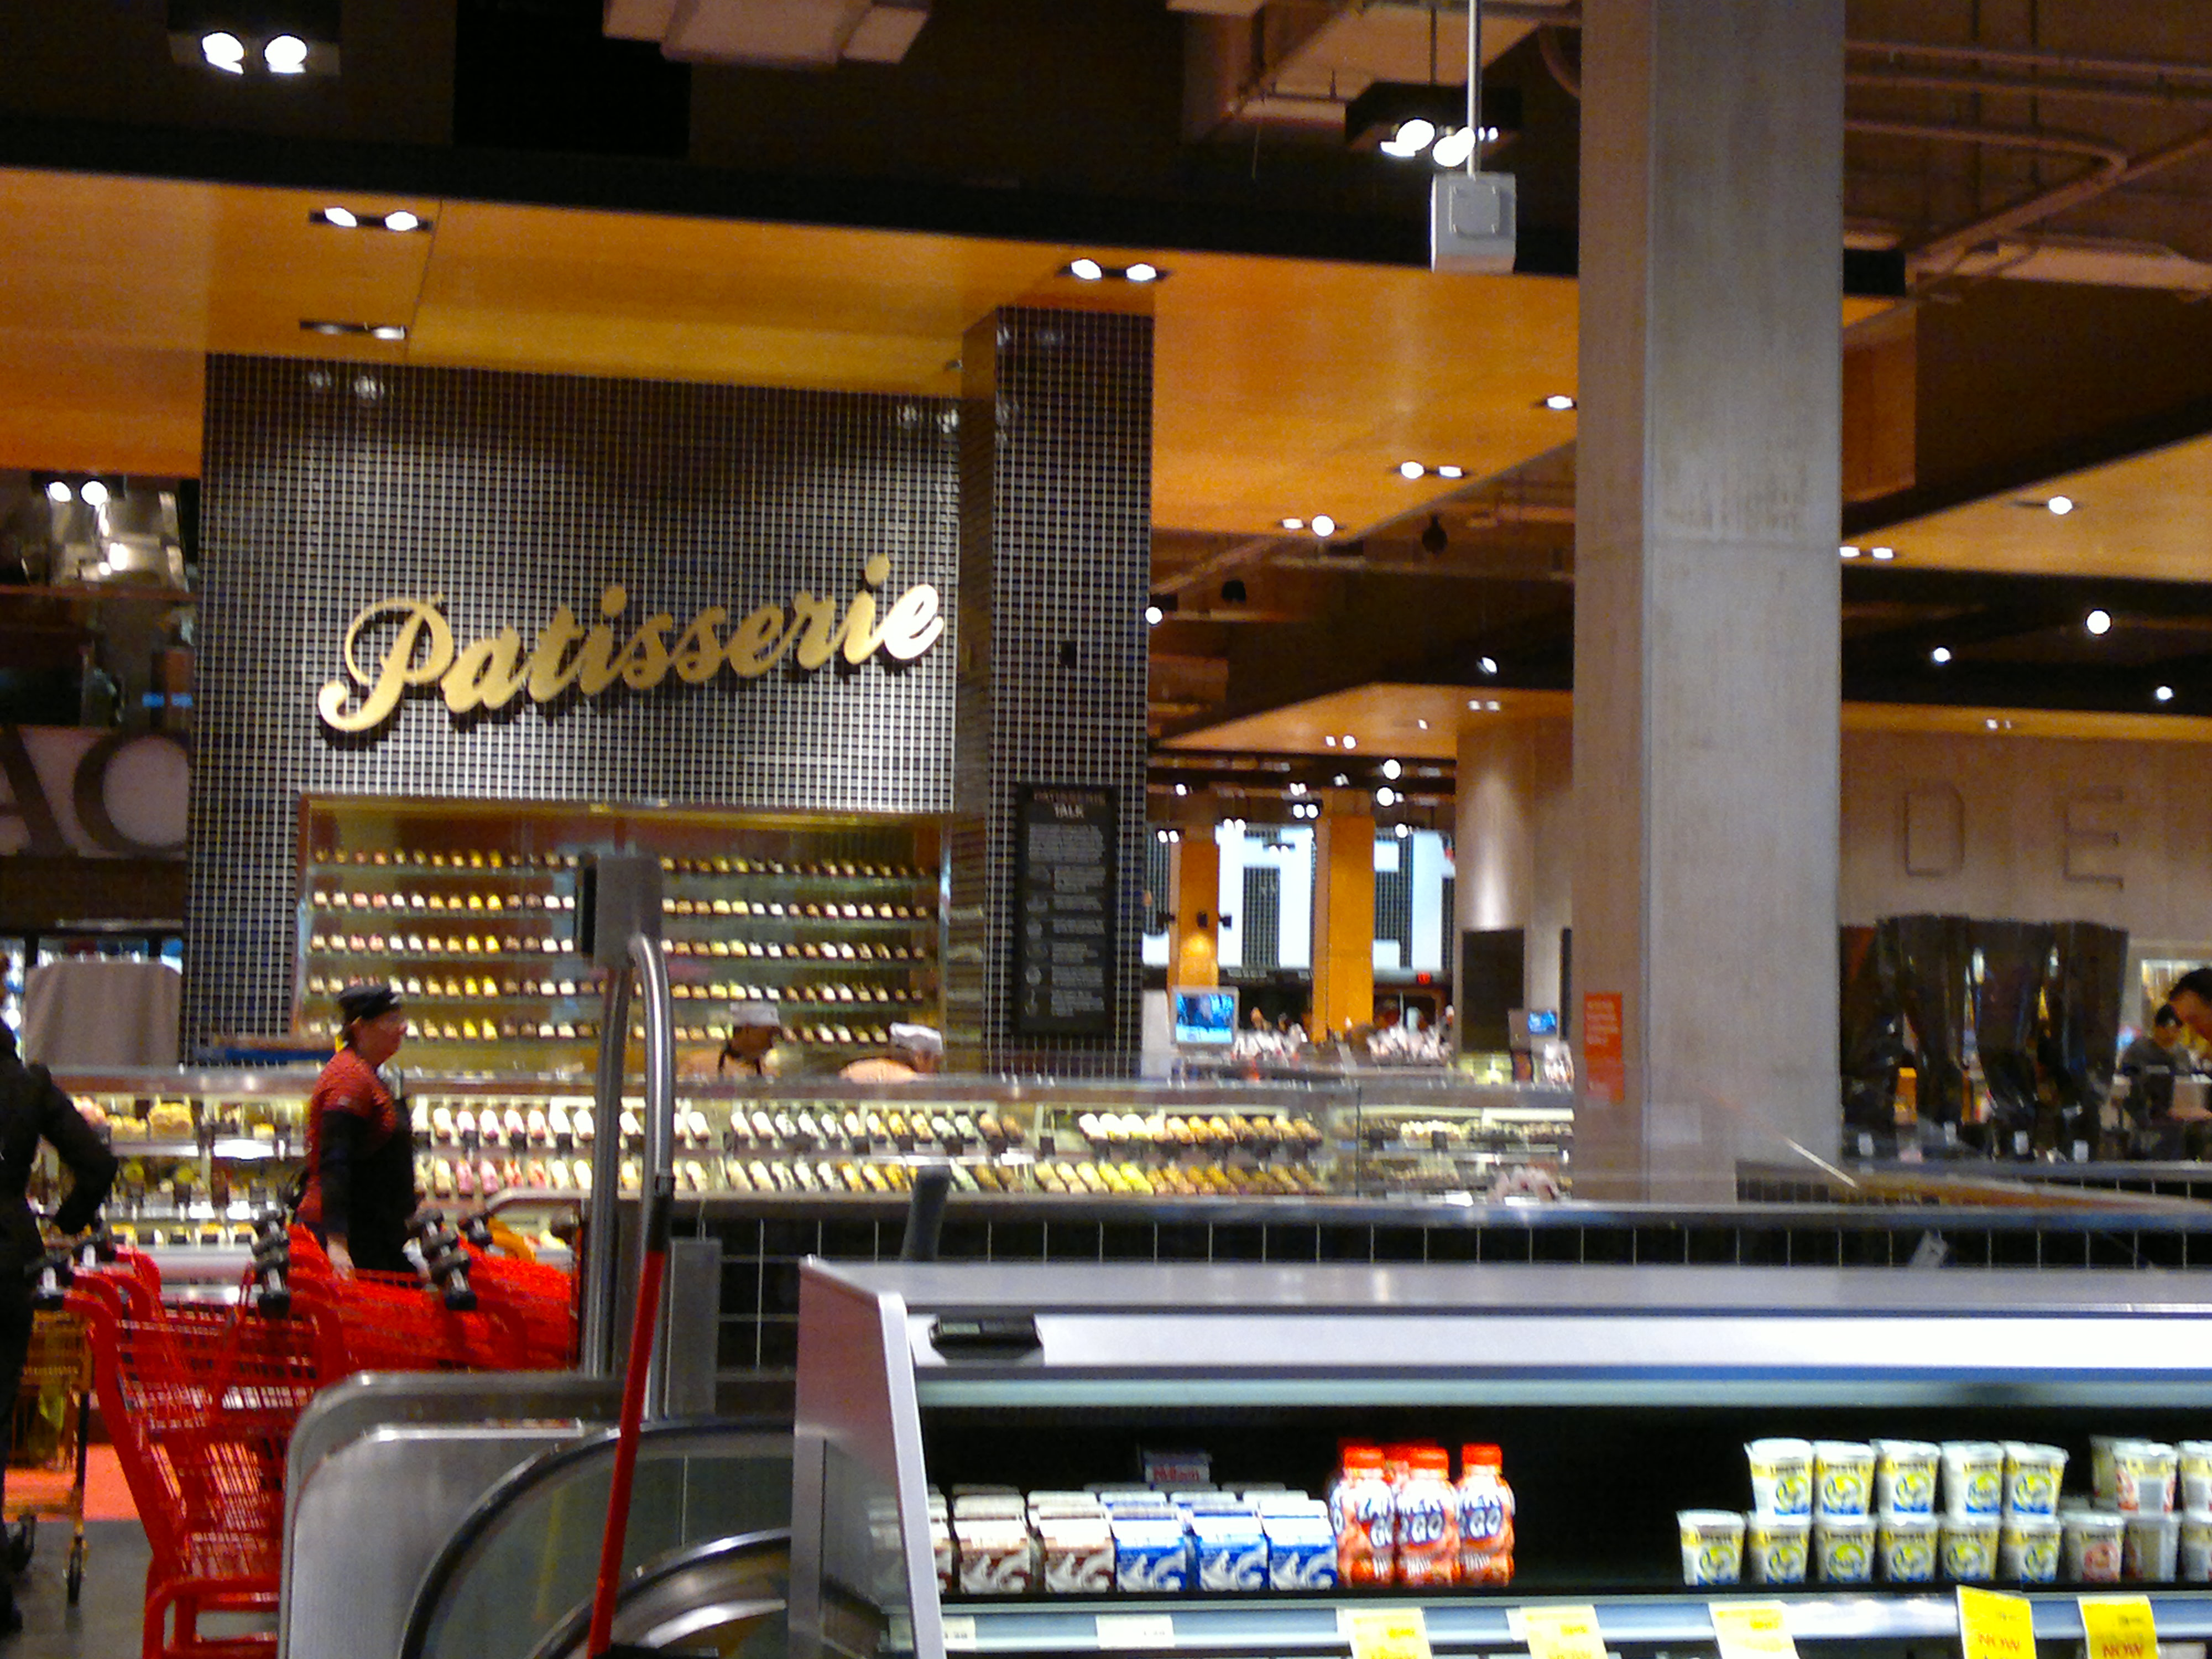 File:Patisserie at Maple Leaf Gardens.jpg - Wikimedia Commons